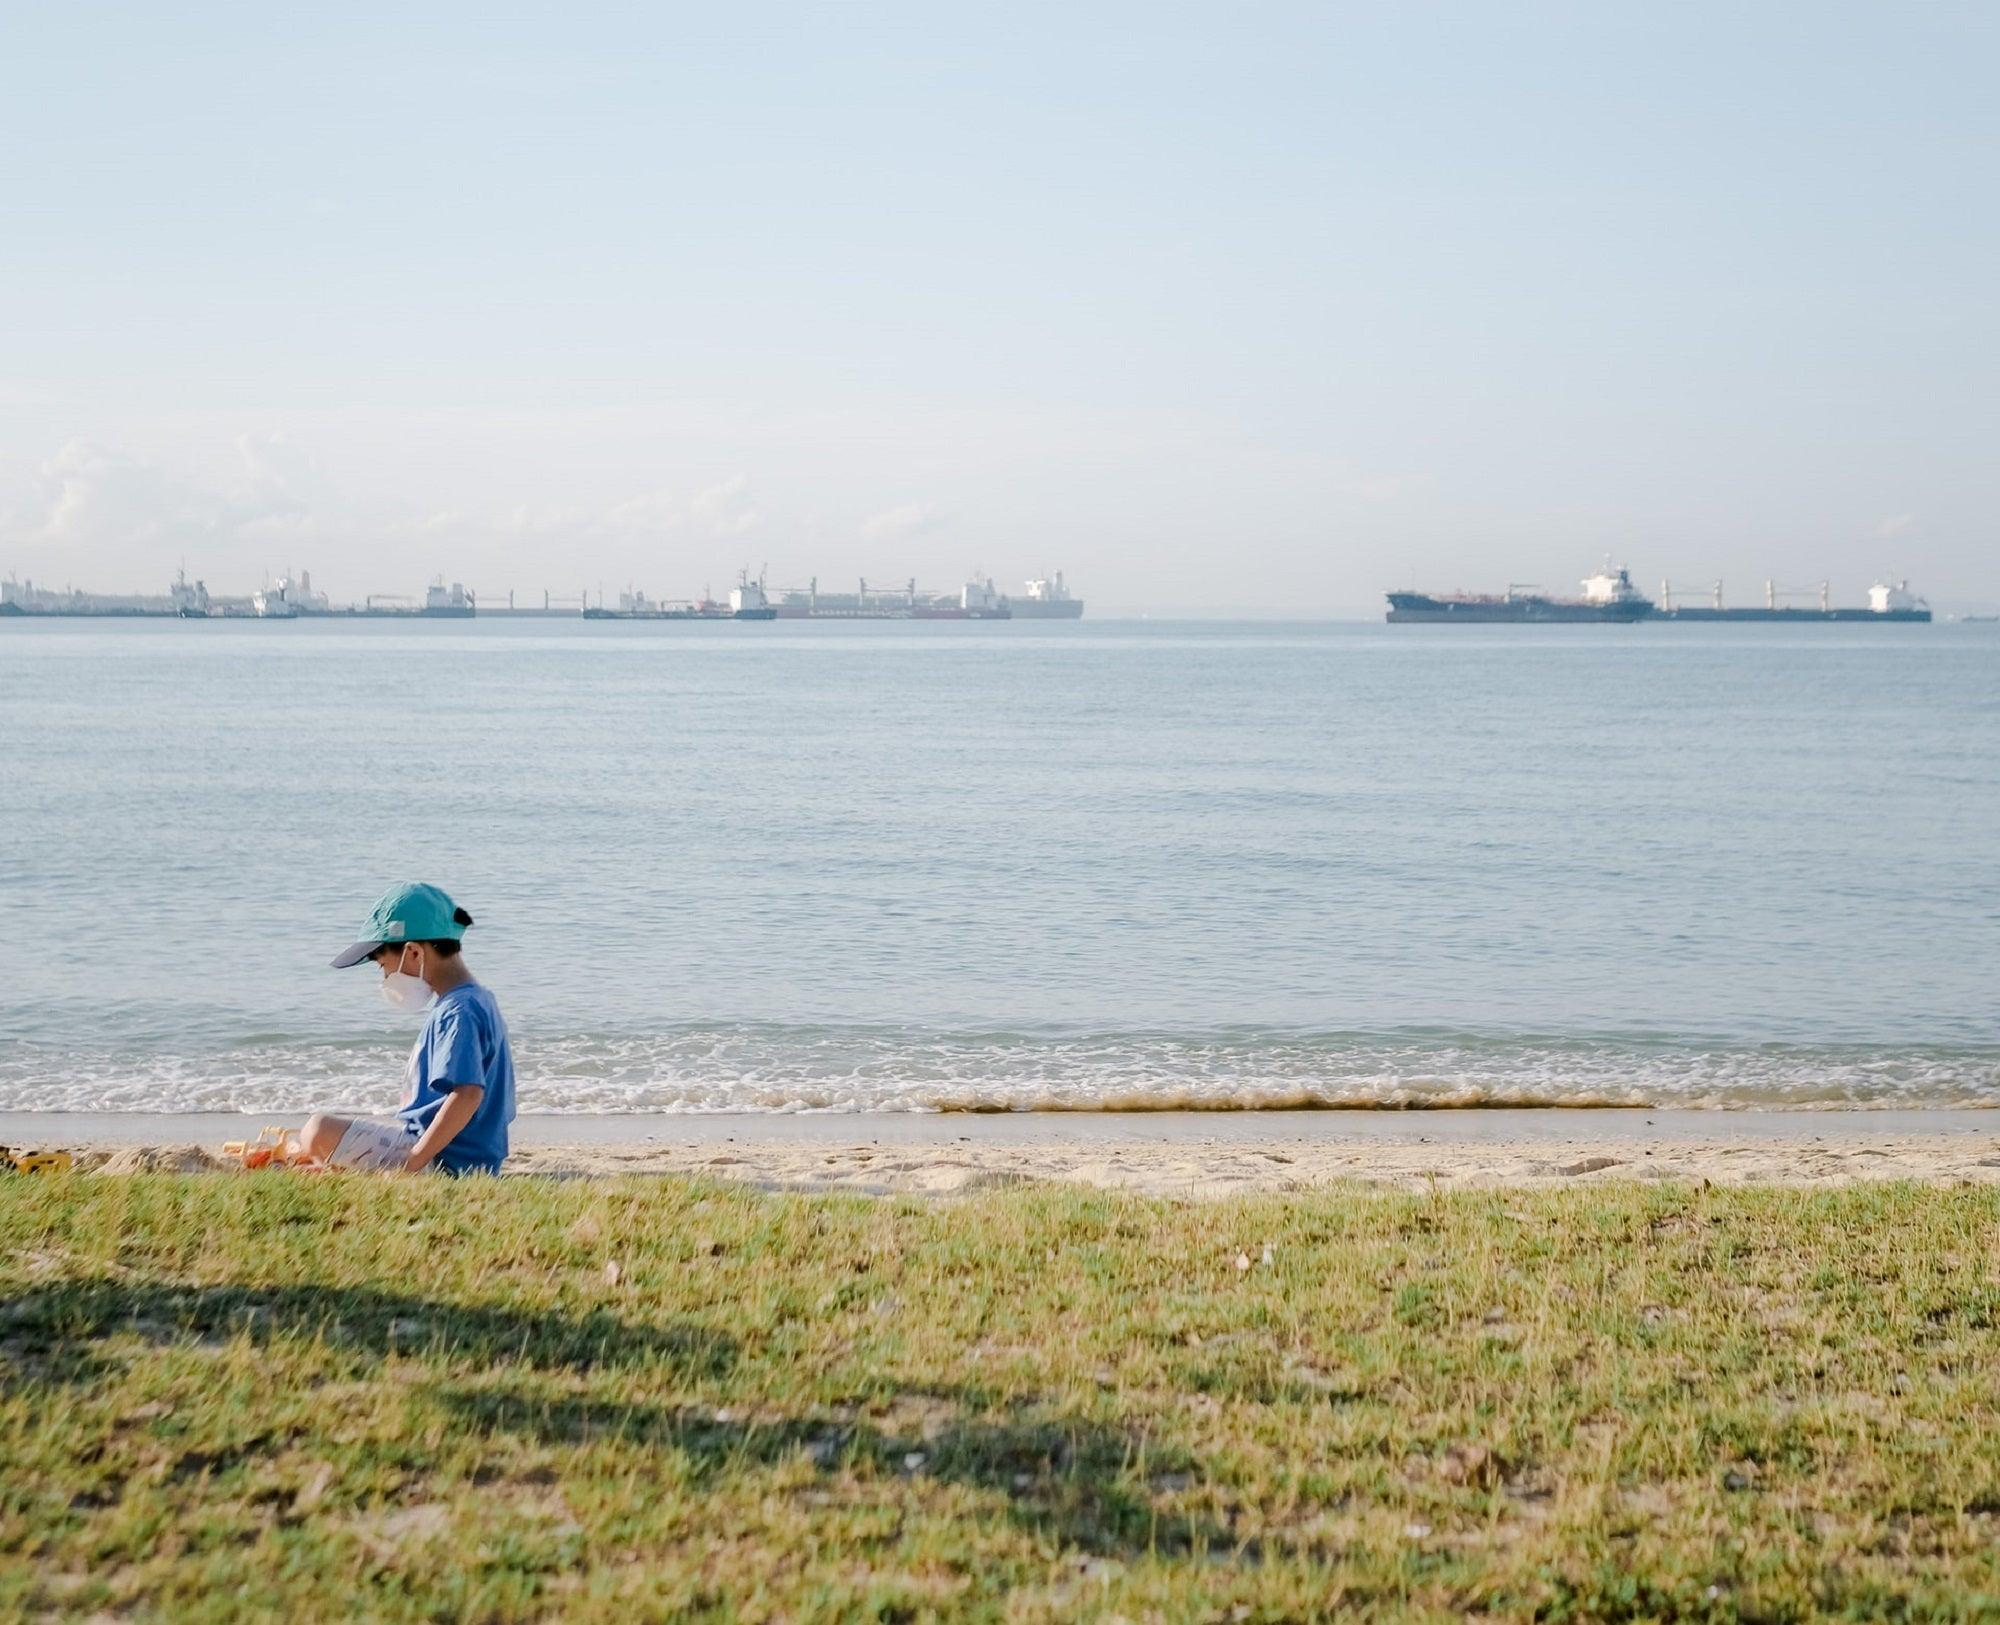 Kid in blue baseball cap and t-shirt sitting on a grassy beach